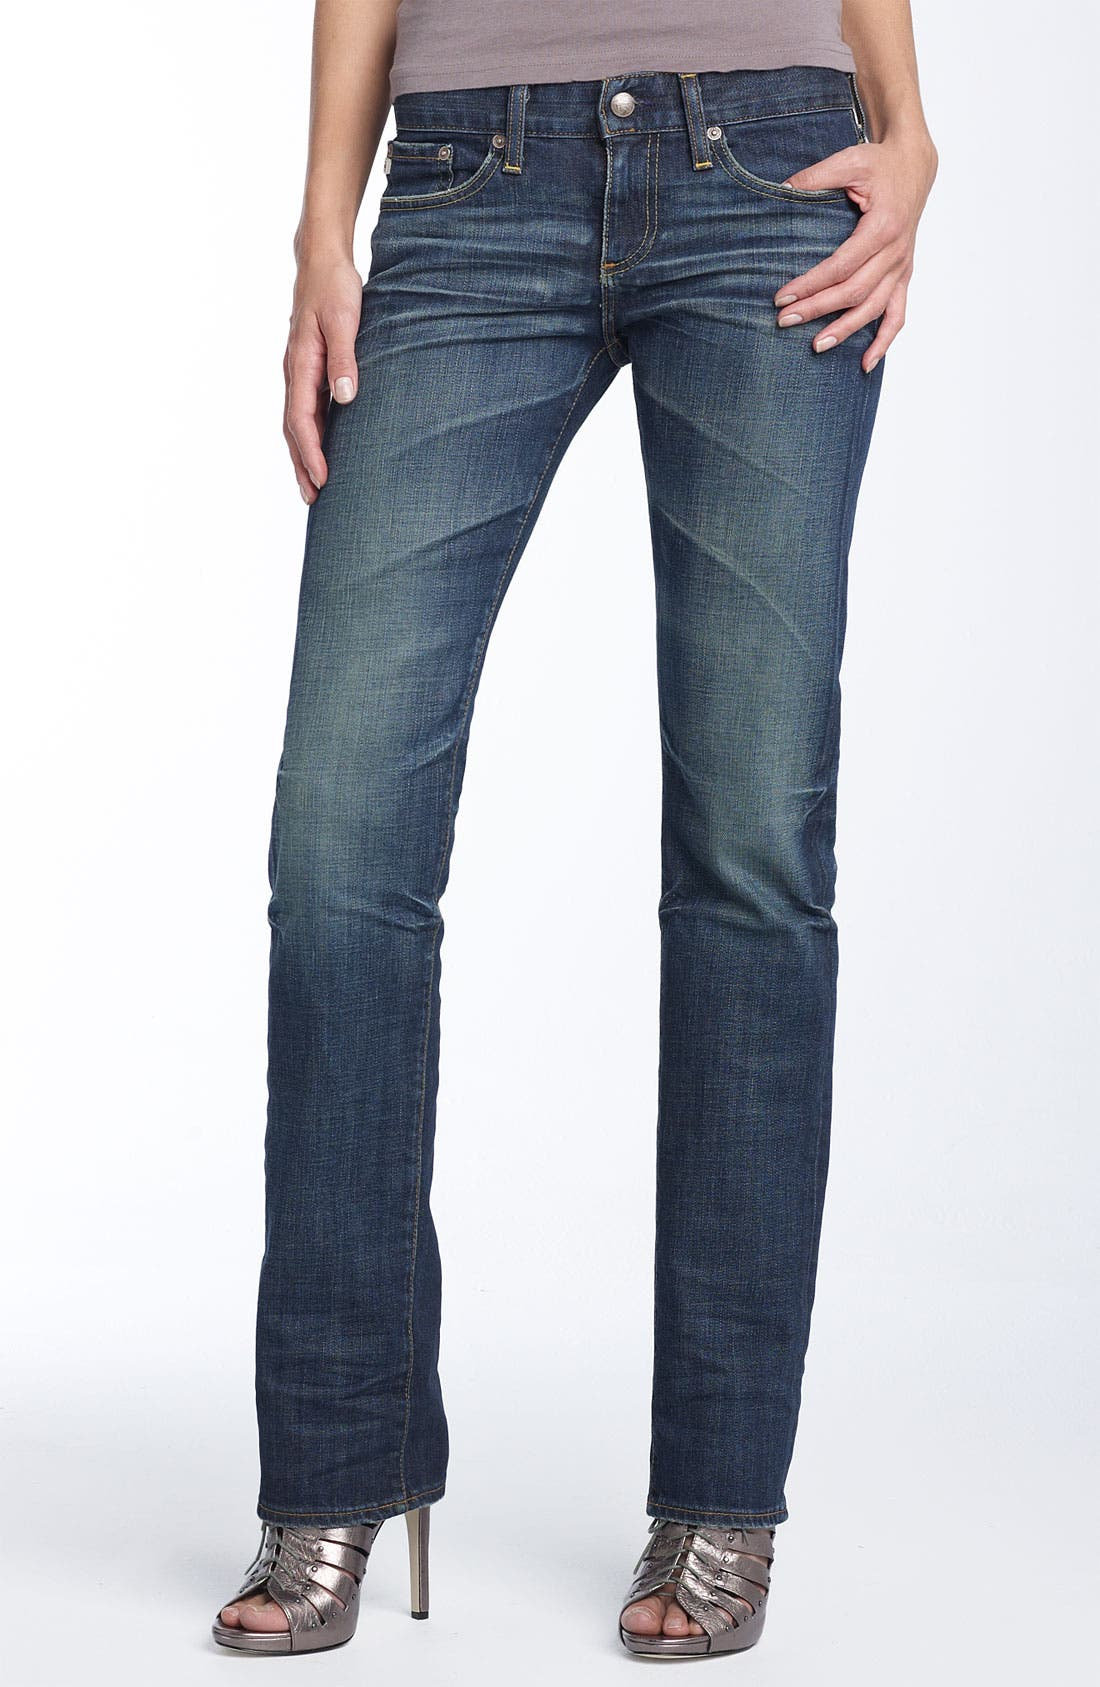 'The Tomboy' Relaxed Straight Leg Jeans,                             Alternate thumbnail 7, color,